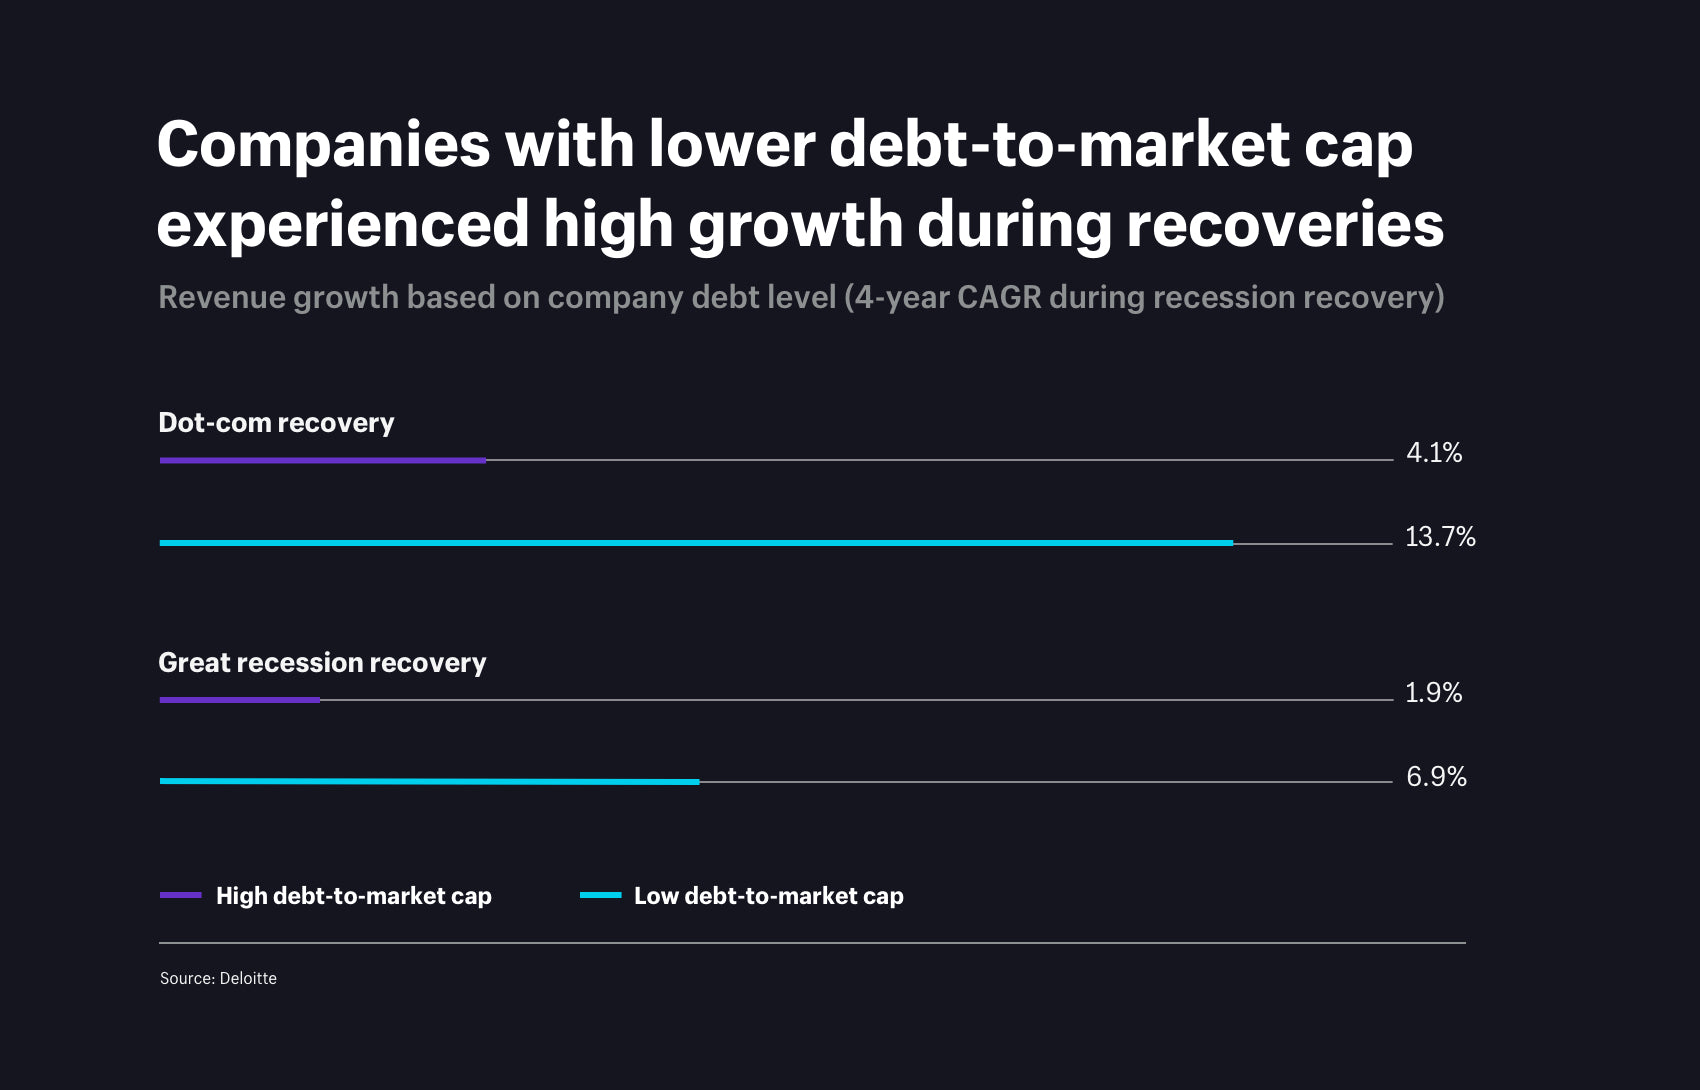 Companies with lower debt to market cap experienced high growth during recoveries